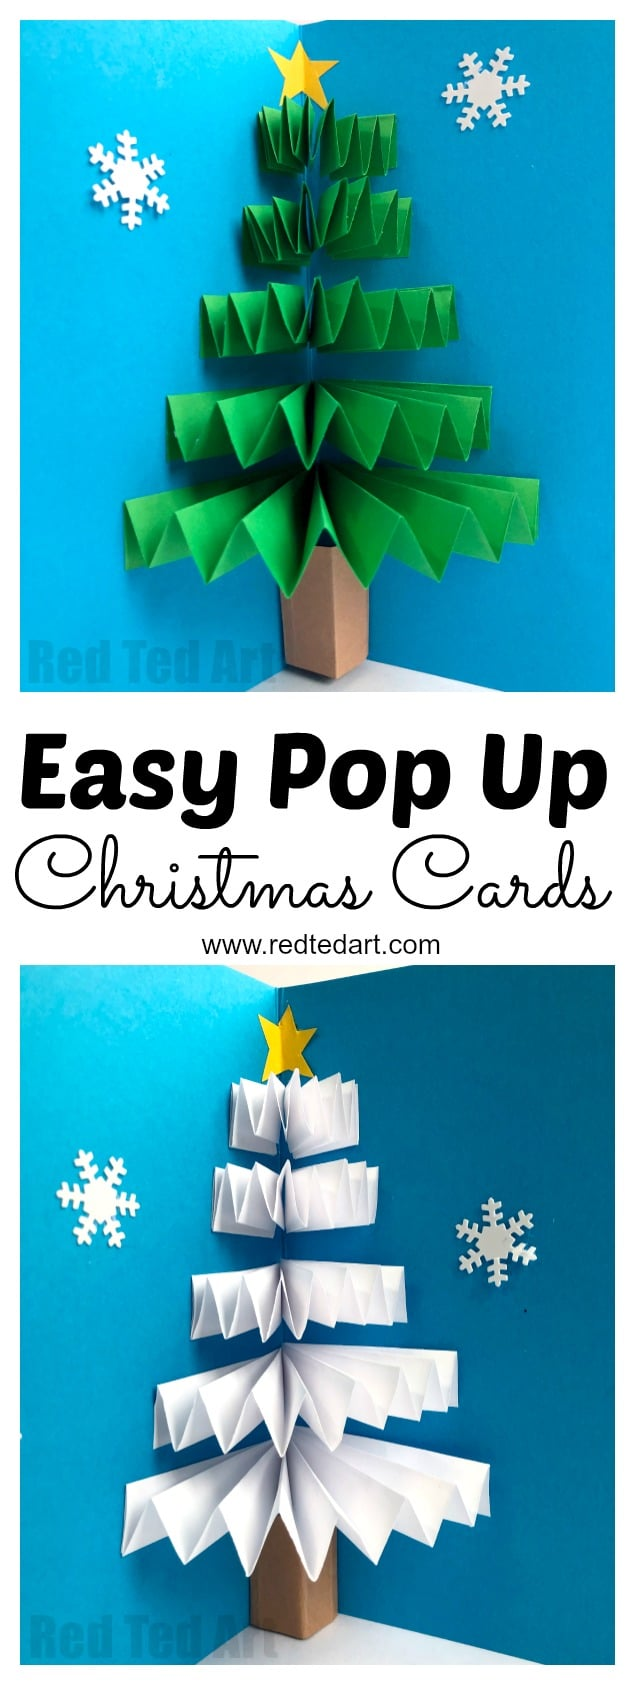 Easy Pop Up Christmas Card - LOVE these 3d Paper Fan Christmas Tree Cards. How cute are they? Working with concertina paper folding techniques, this is a quick and easy card to make for the holidays. Love both the traditional Christmas Tree and white Winter Tree Card versions. #ChristmasCards #Christmascard #popup #popupchristmascard #christmastree #3dcards #cardmaking